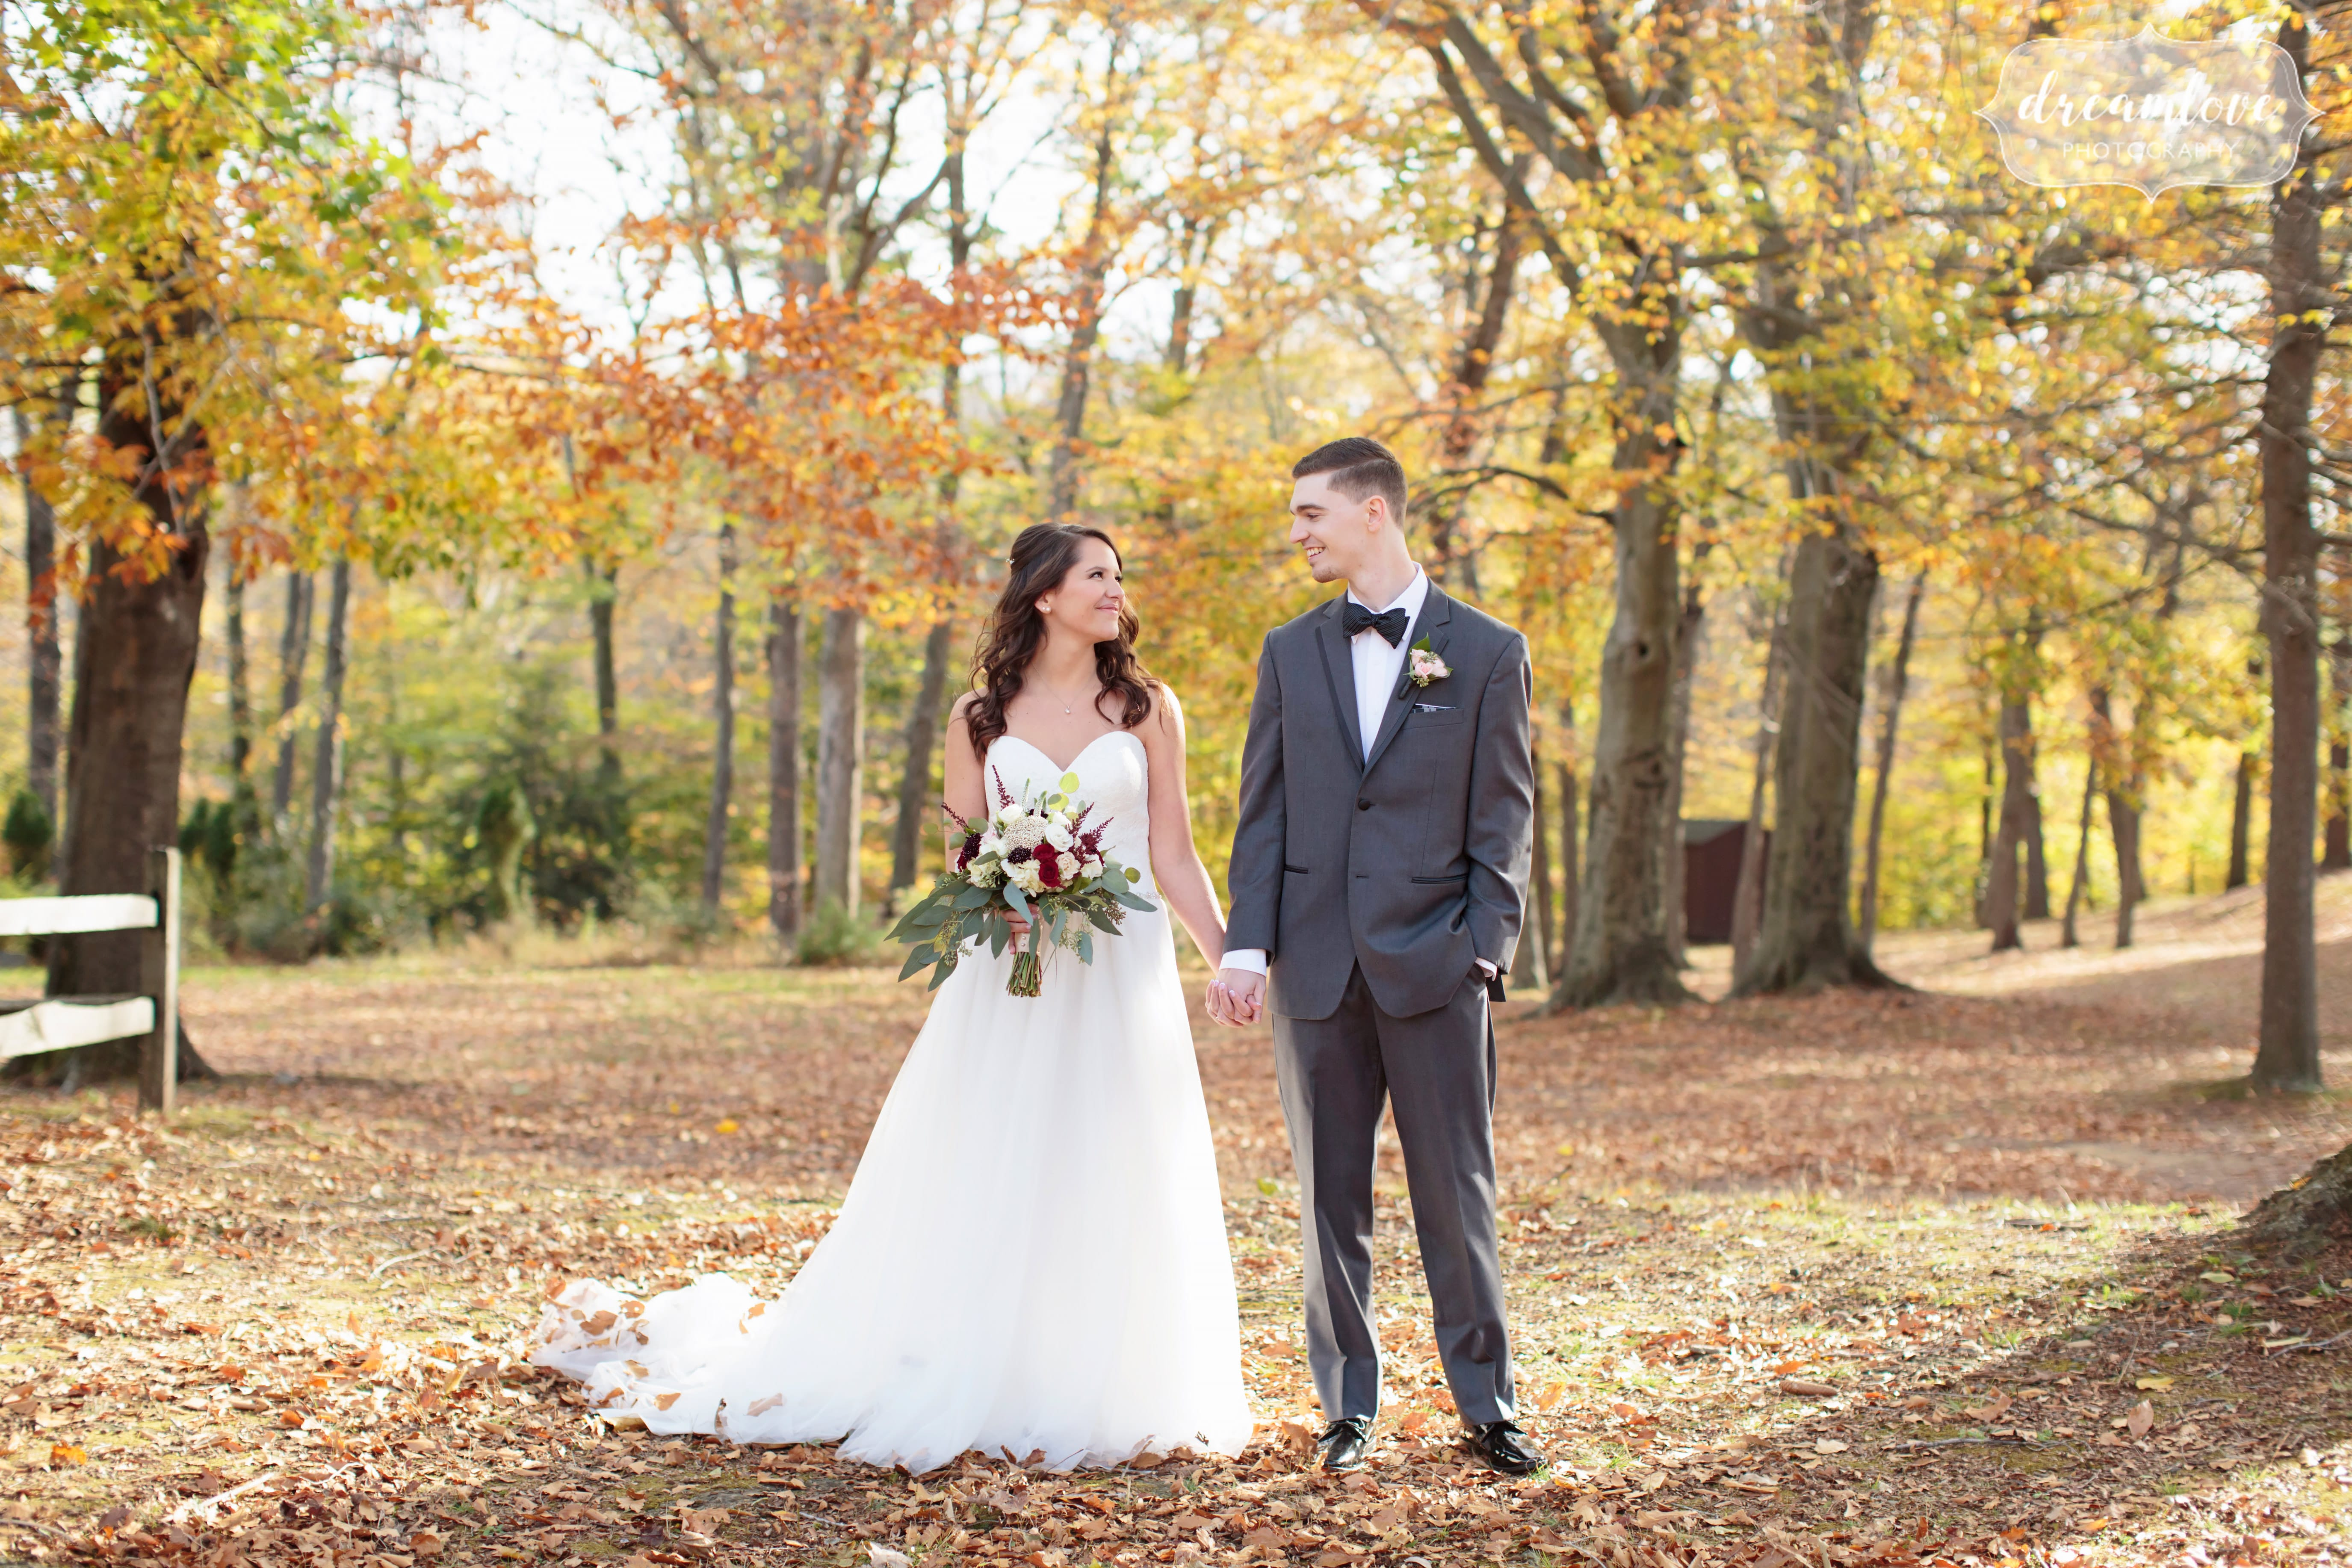 Bride and groom holding hands under a canopy of yellow fall trees in CT.